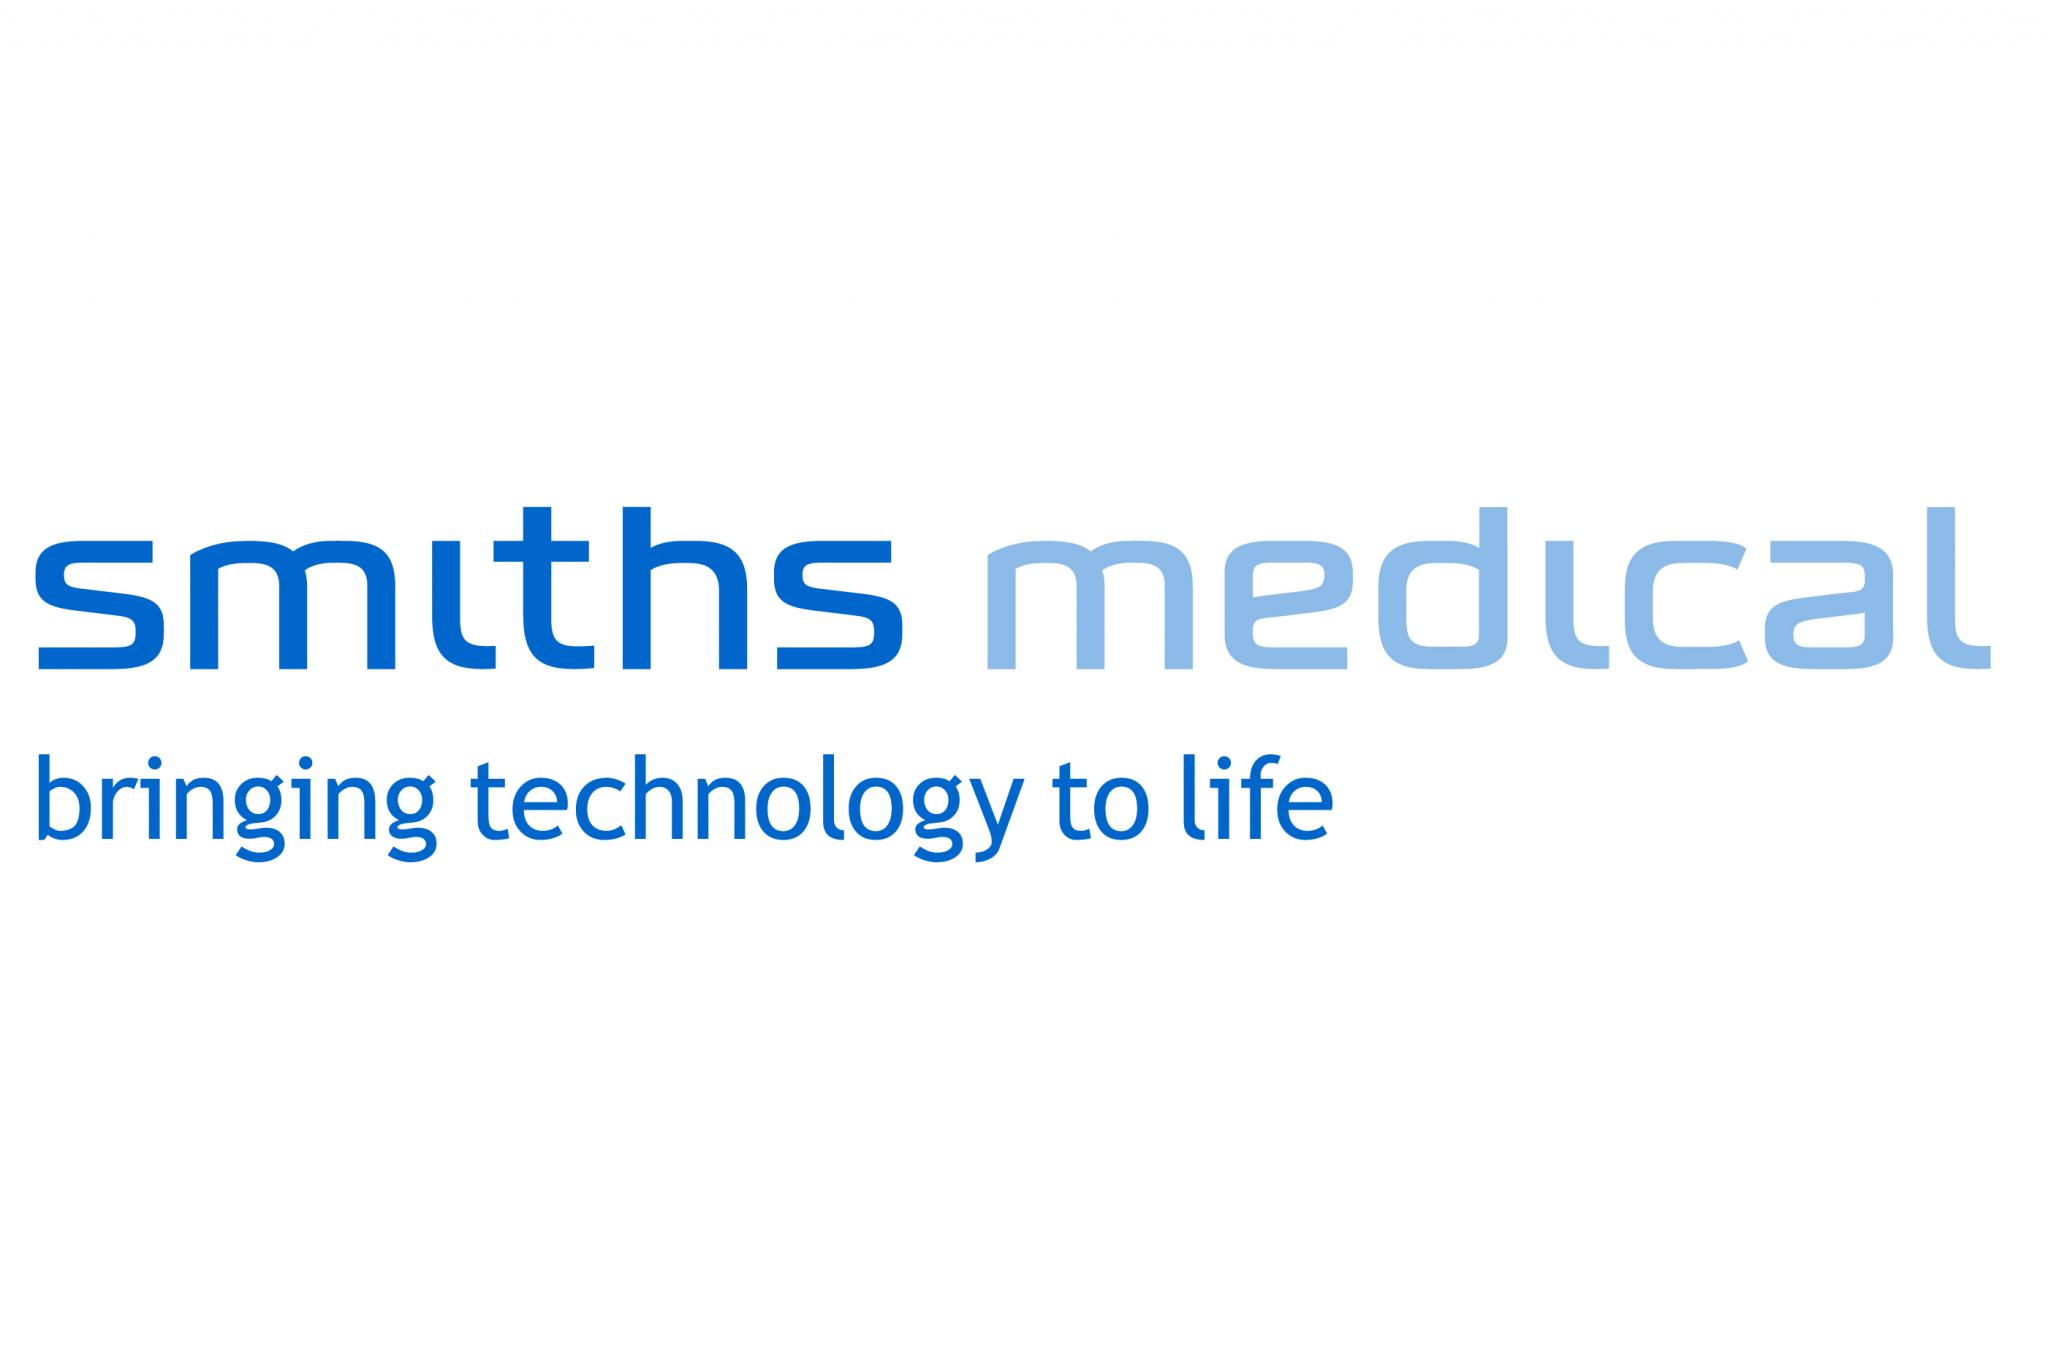 smiths-medical-large-3x2.jpg